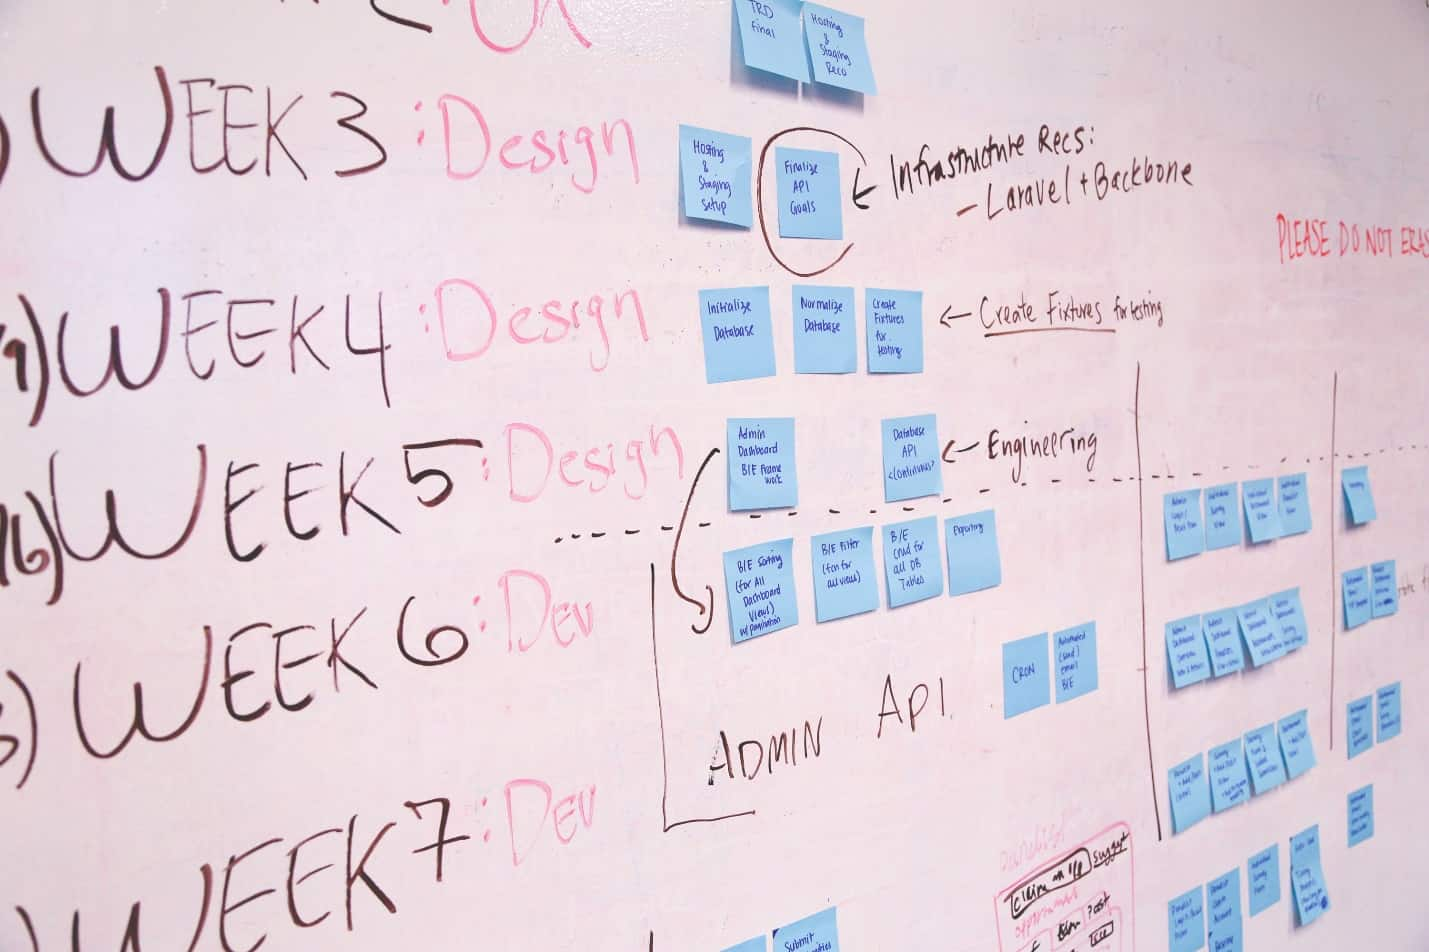 project management planning on whiteboard